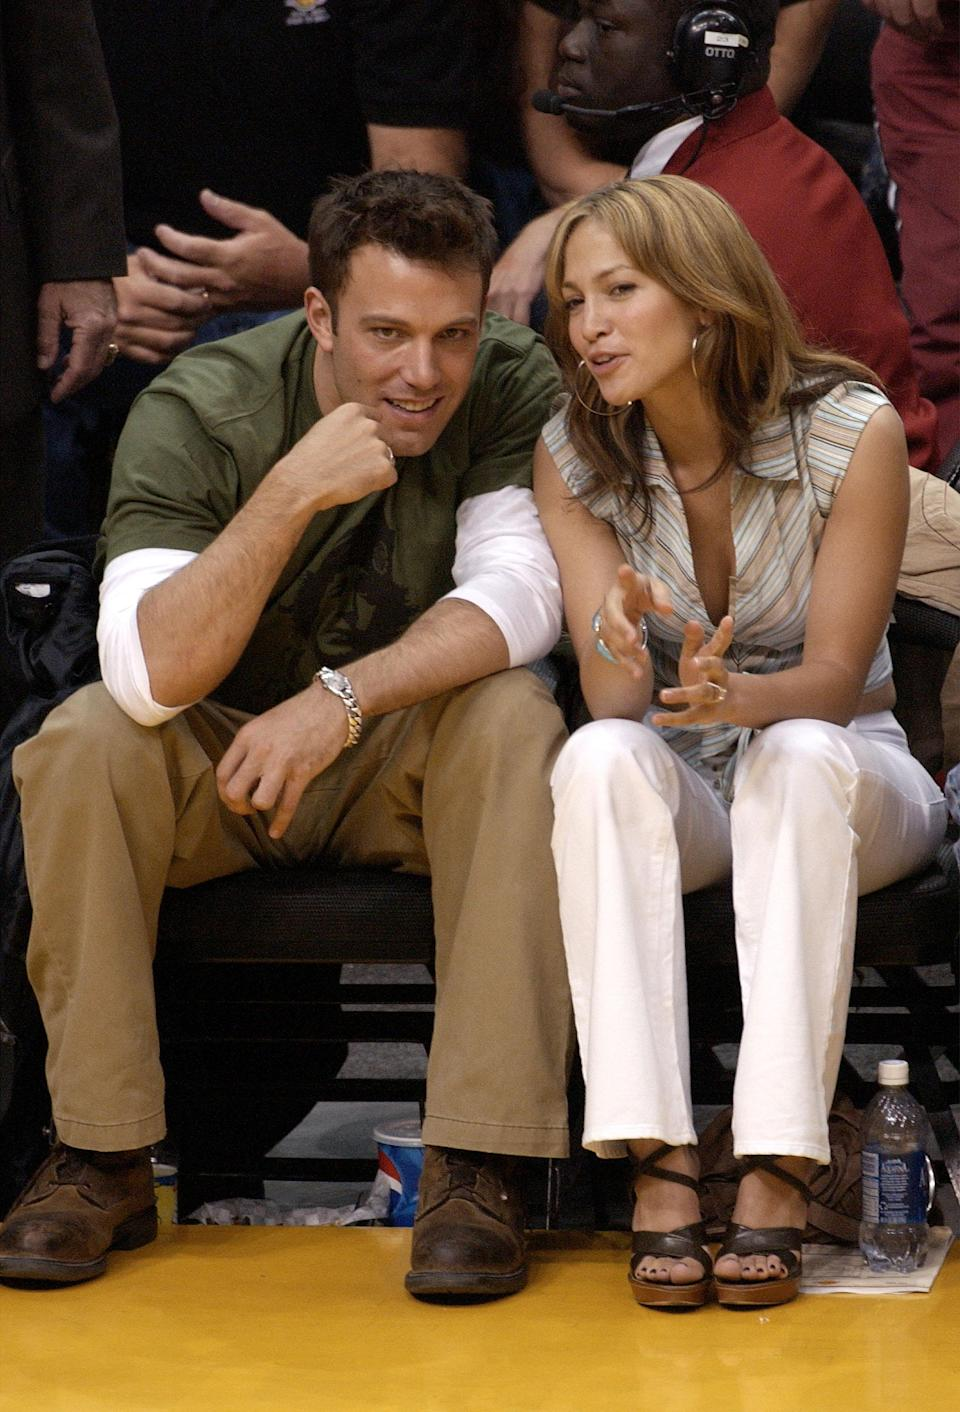 Ben Affleck and Jennifer Lopez attend a Lakers game in 2003. Check that left wrist!